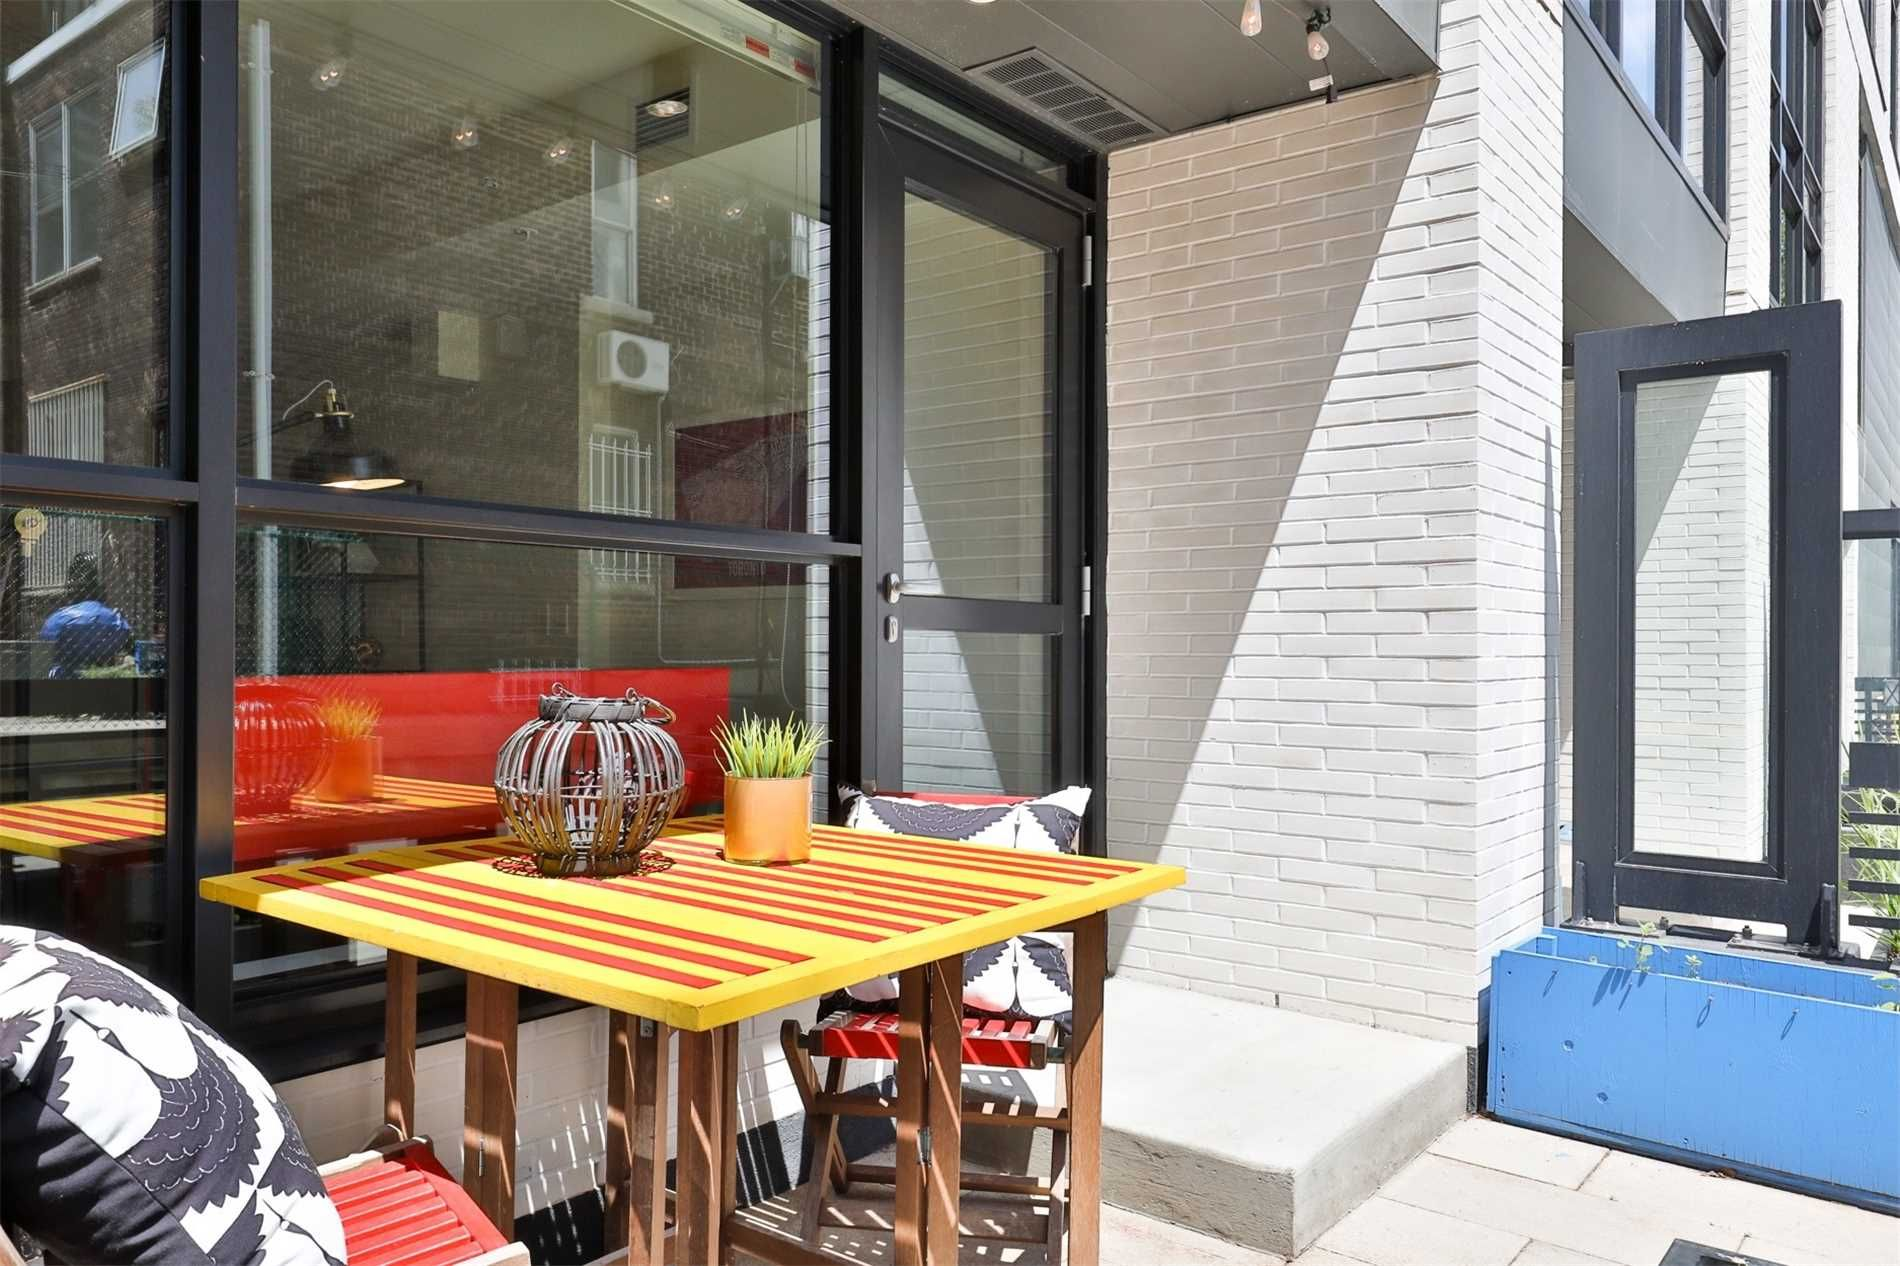 530 Indian Grve, unit 105 for sale in Toronto - image #2